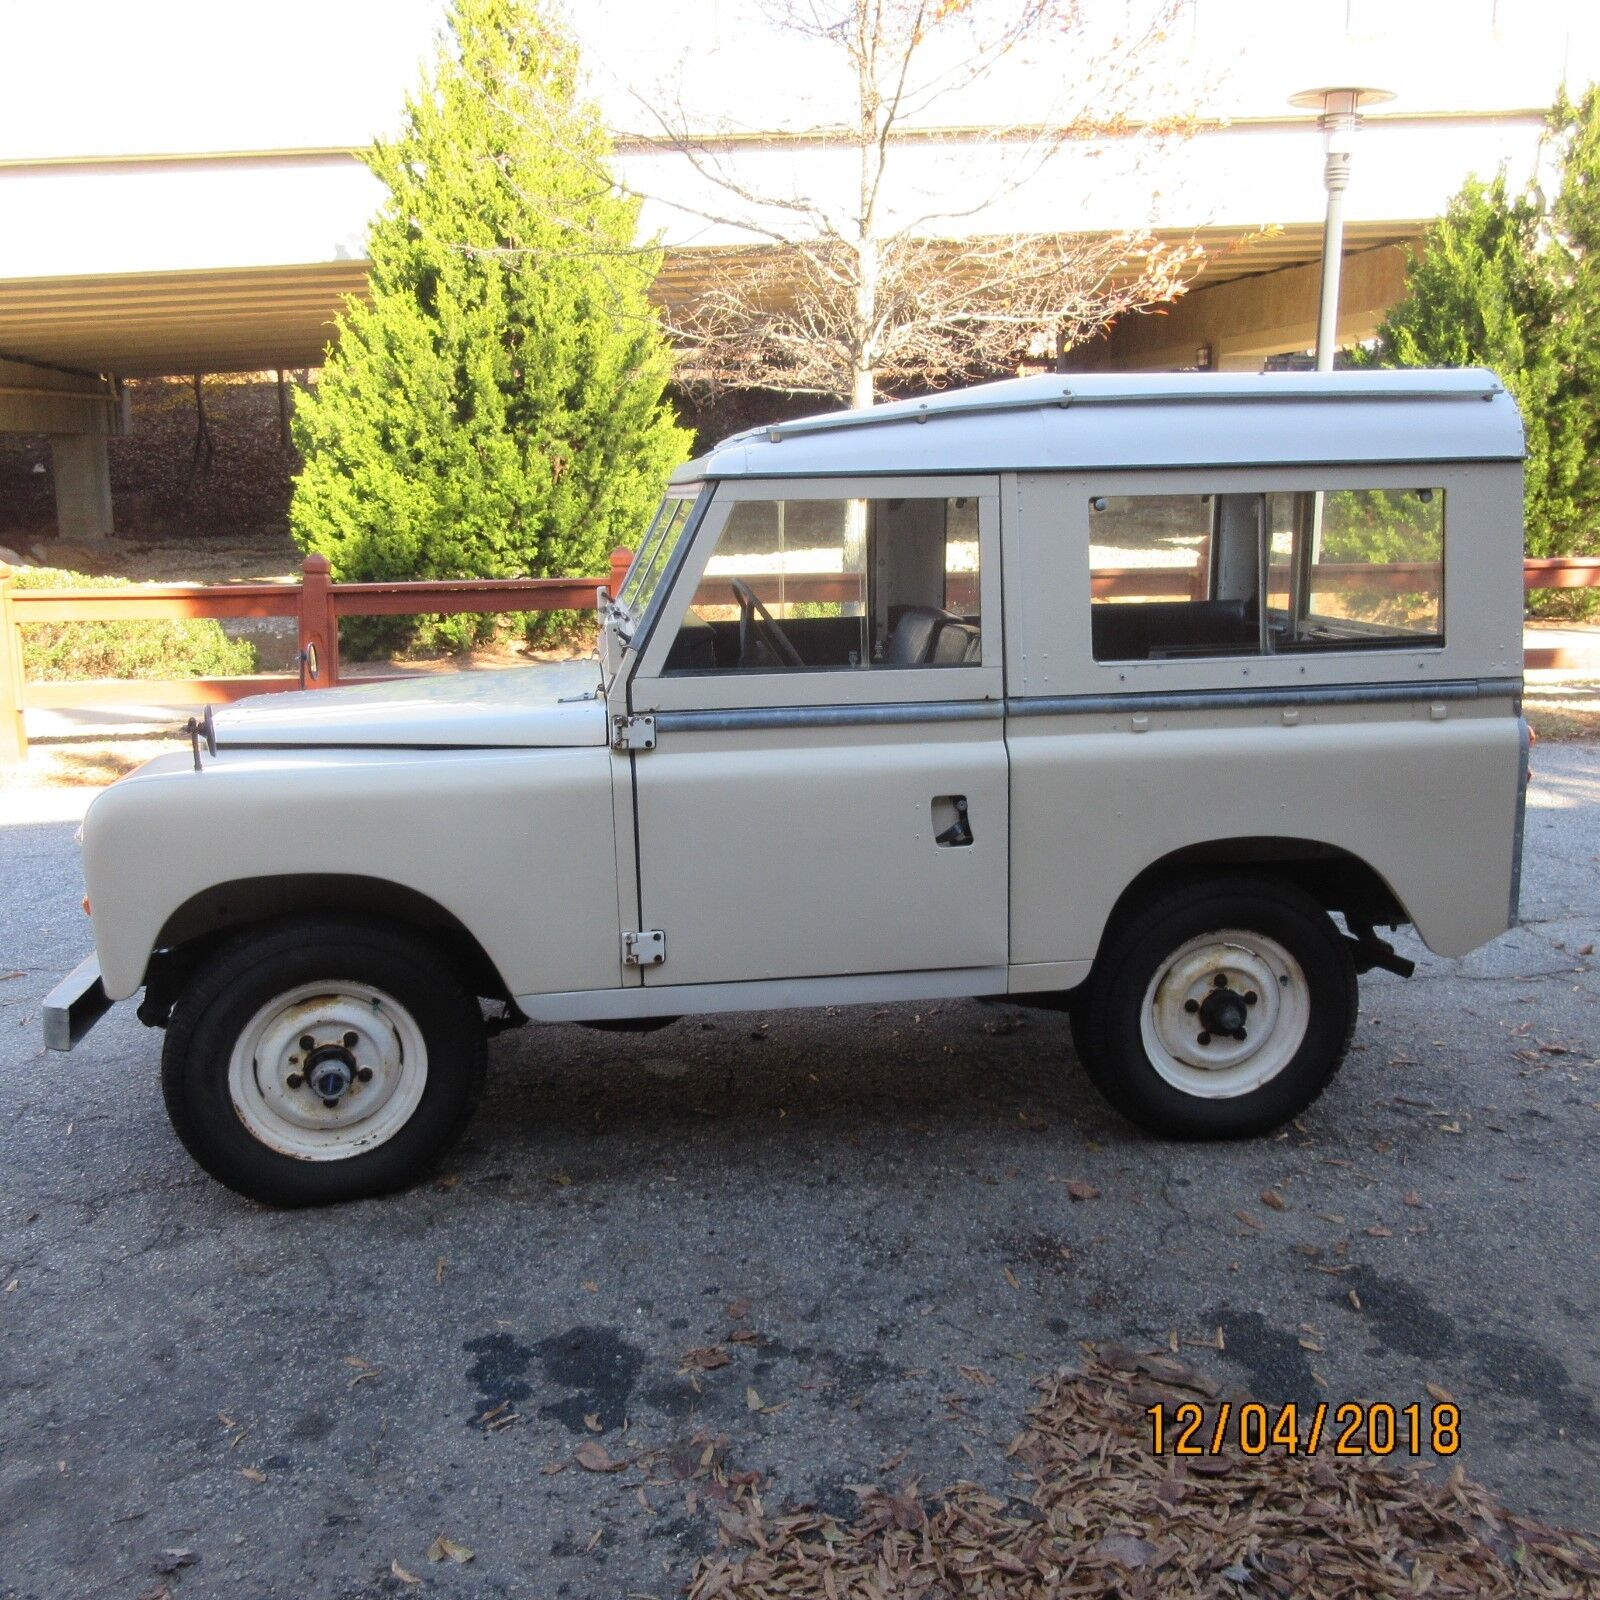 1974 Land Rover LR3  Land Rover  Series III1974 Very good condition